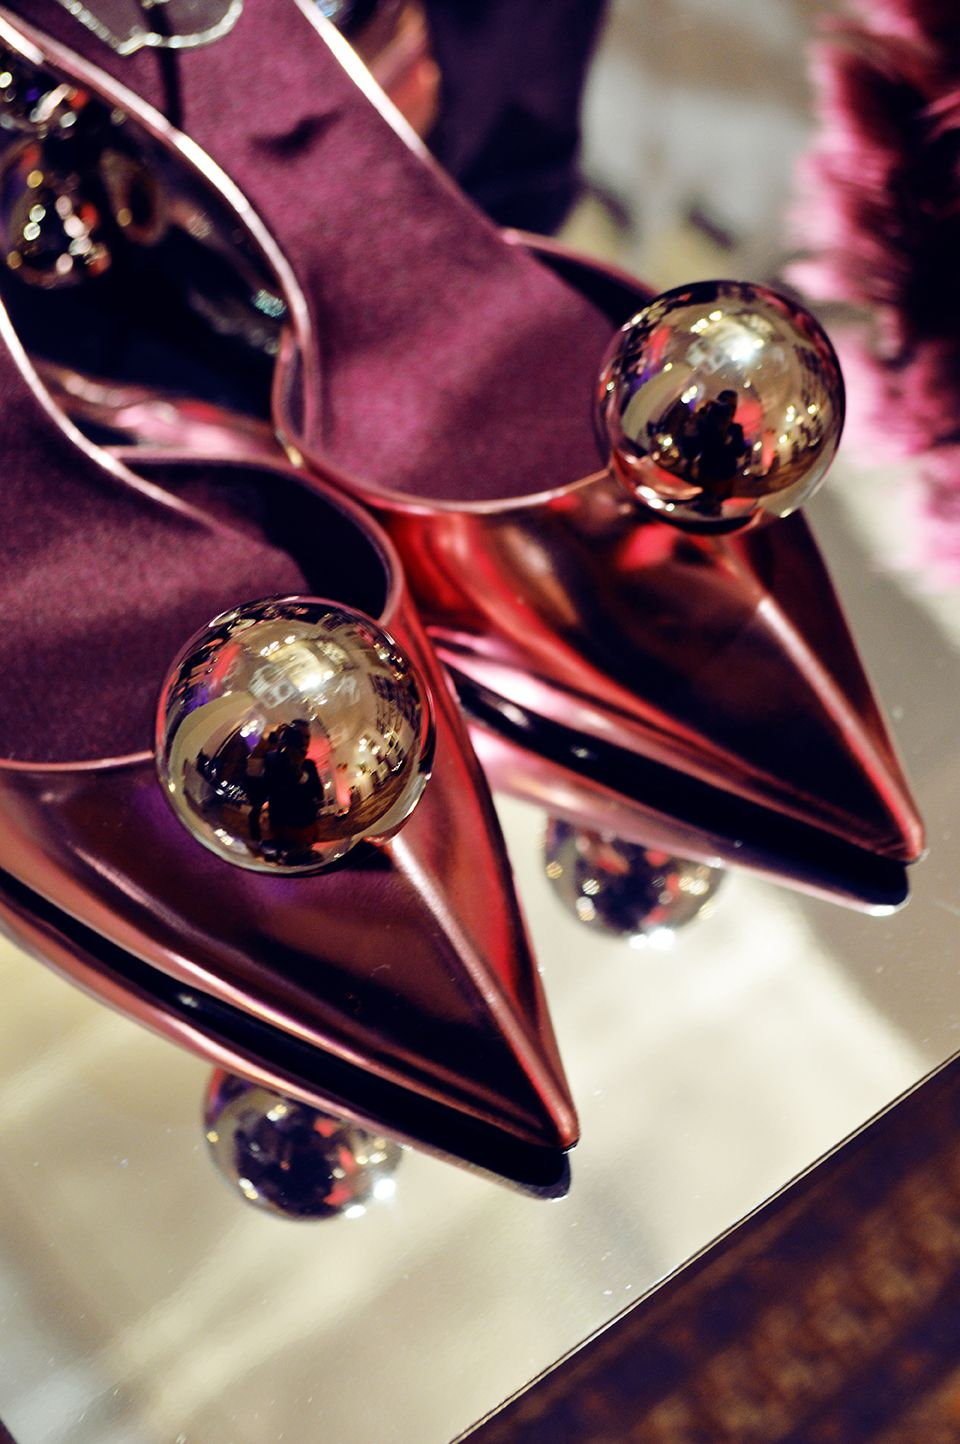 Metalic Ping Ping Low Kitten Heel As Seen During Rogervivier Rendezvous Aw 14 15 Limited Edition Presentation Roger Vivier Shades Of Burgundy Burgundy Wine